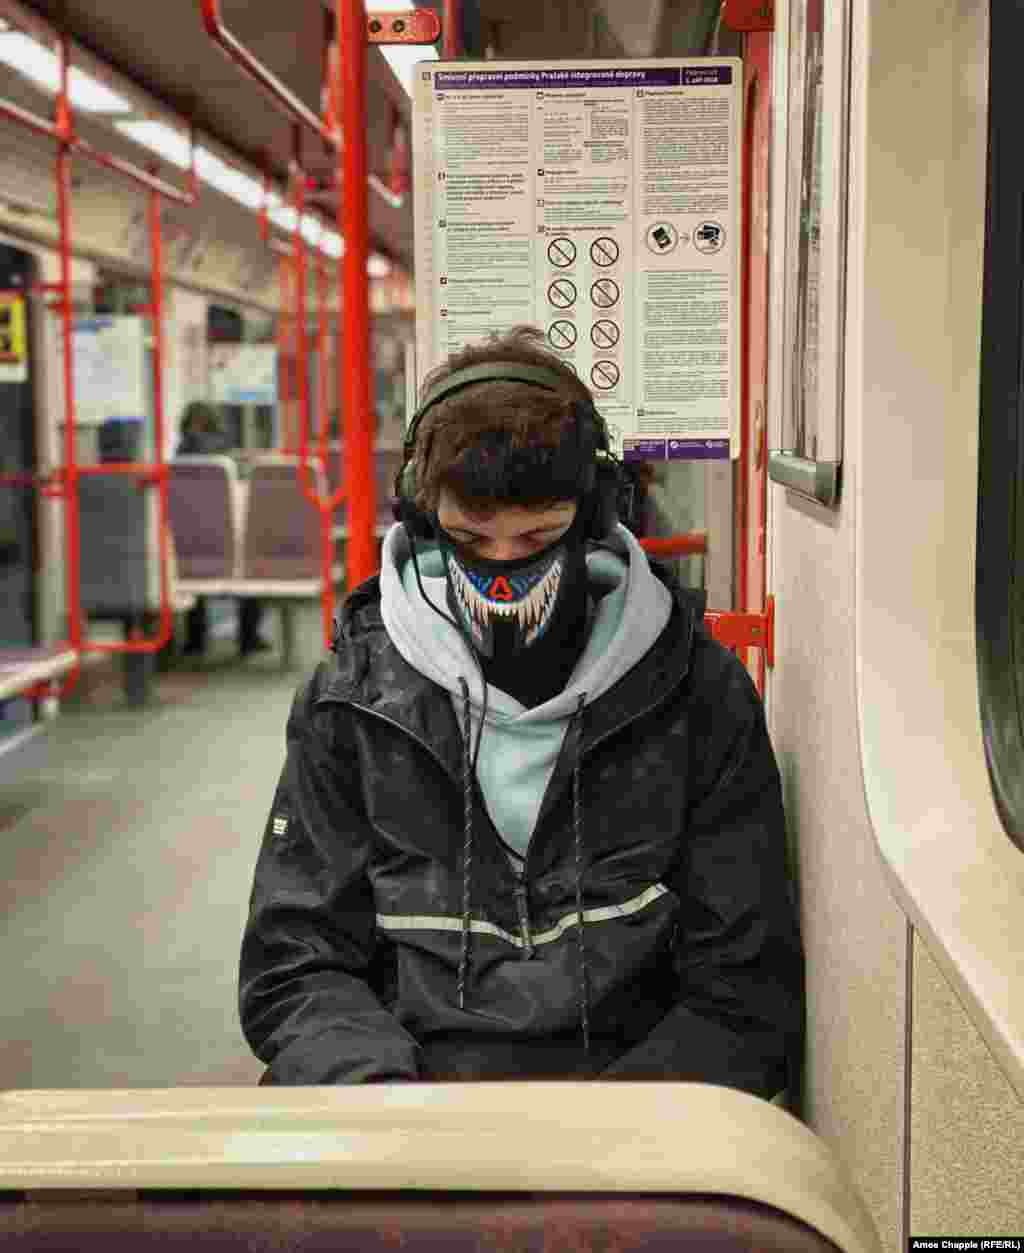 A man dozes in his face mask shortly before 8 a.m. on March 17.